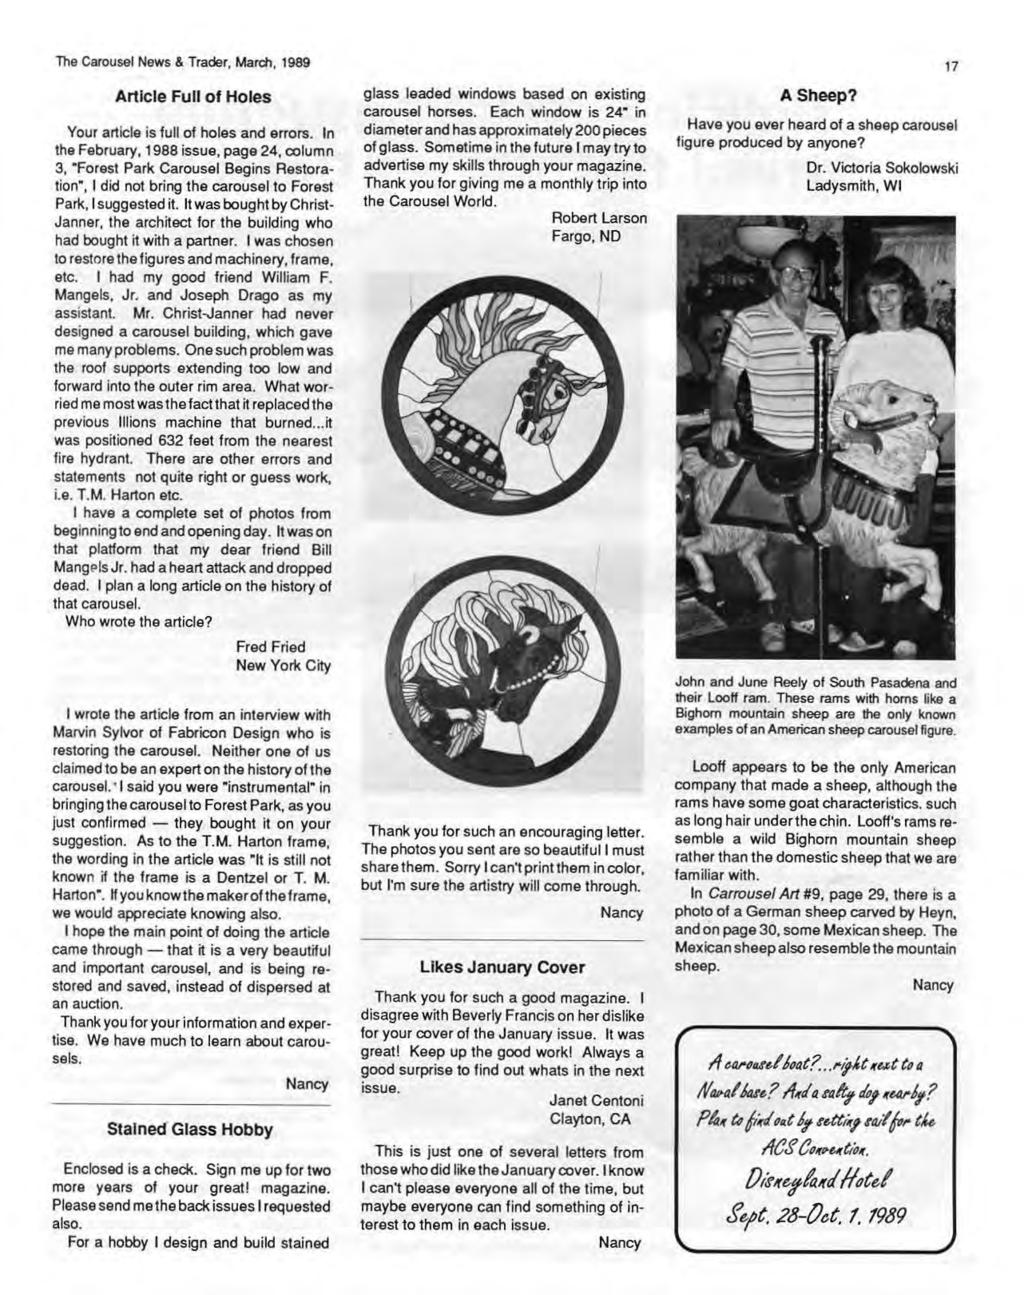 The Carousel News & Trader, March, 1989 Article Full of Holes Your article is full of holes and errors.